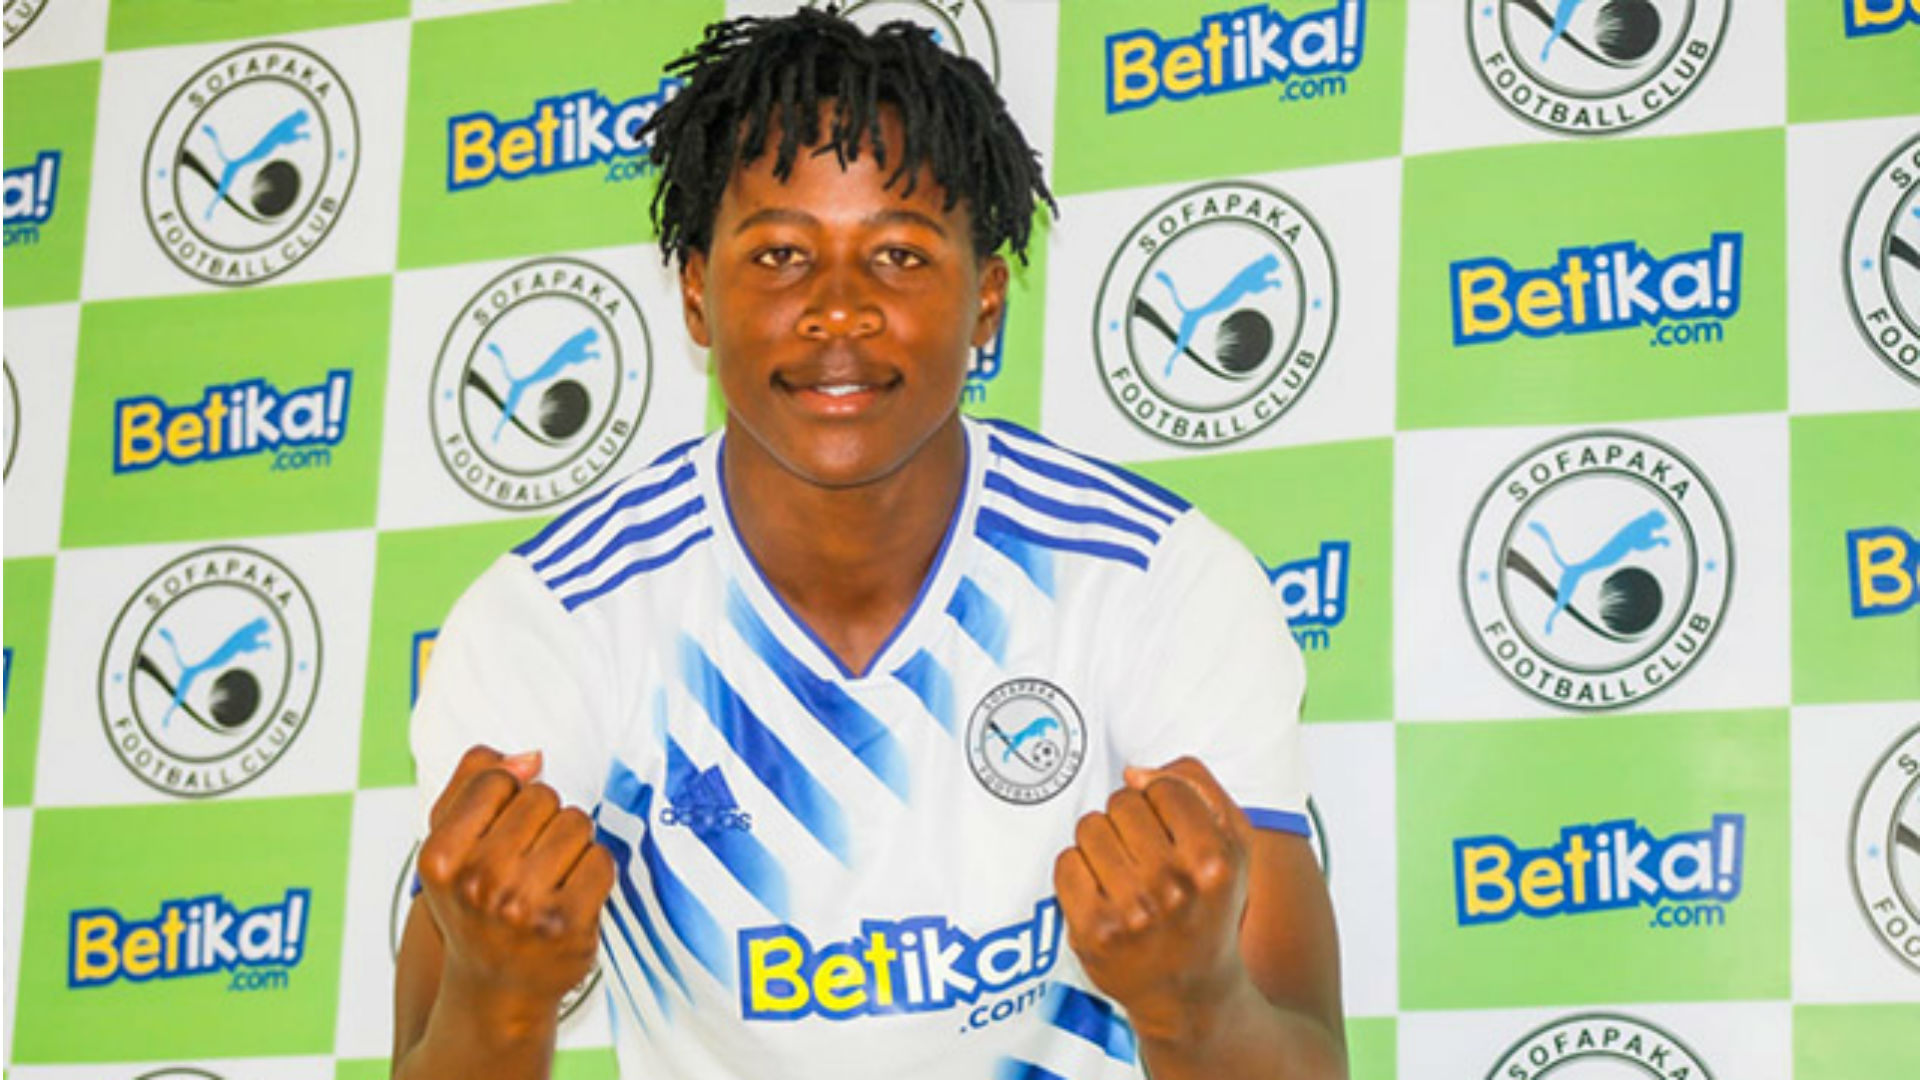 'It is like I never made any move' - Sofapaka FC defender Kibwage